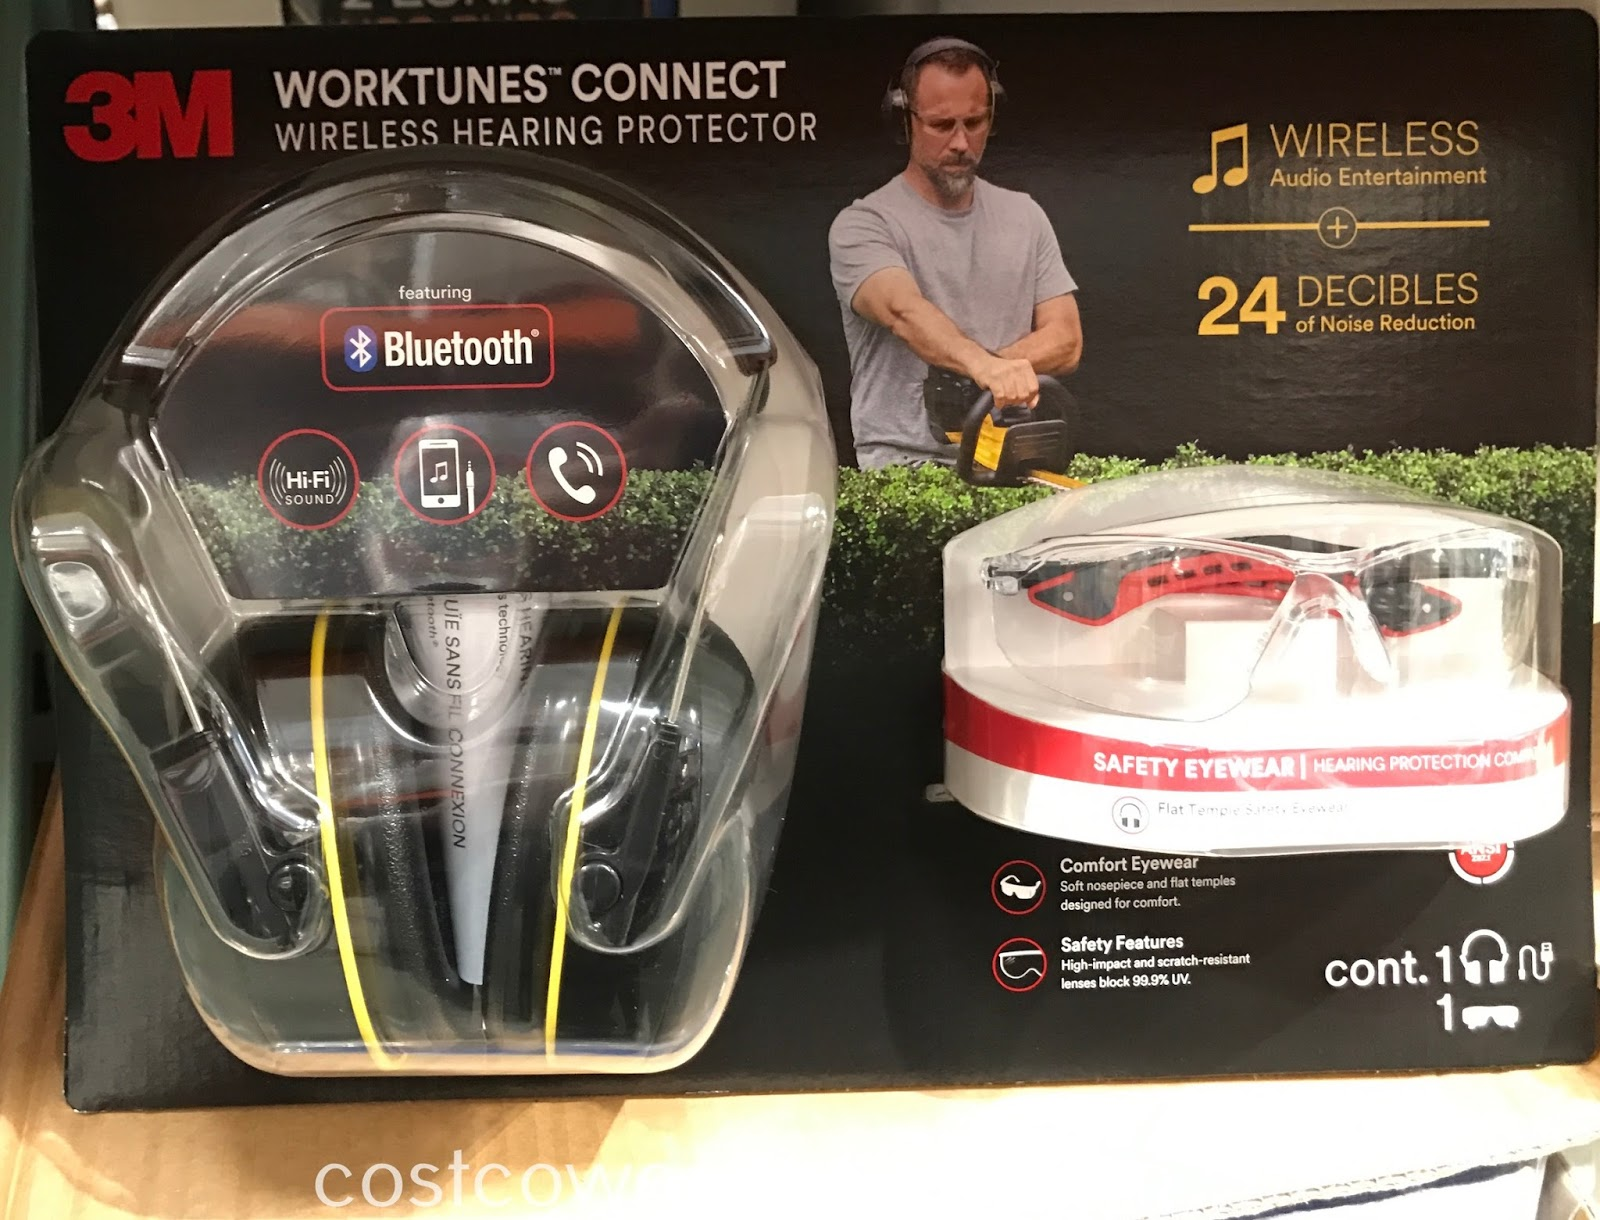 Protect both your ears and eyes with the 3M Worktunes Connect Wireless Hearing Protector